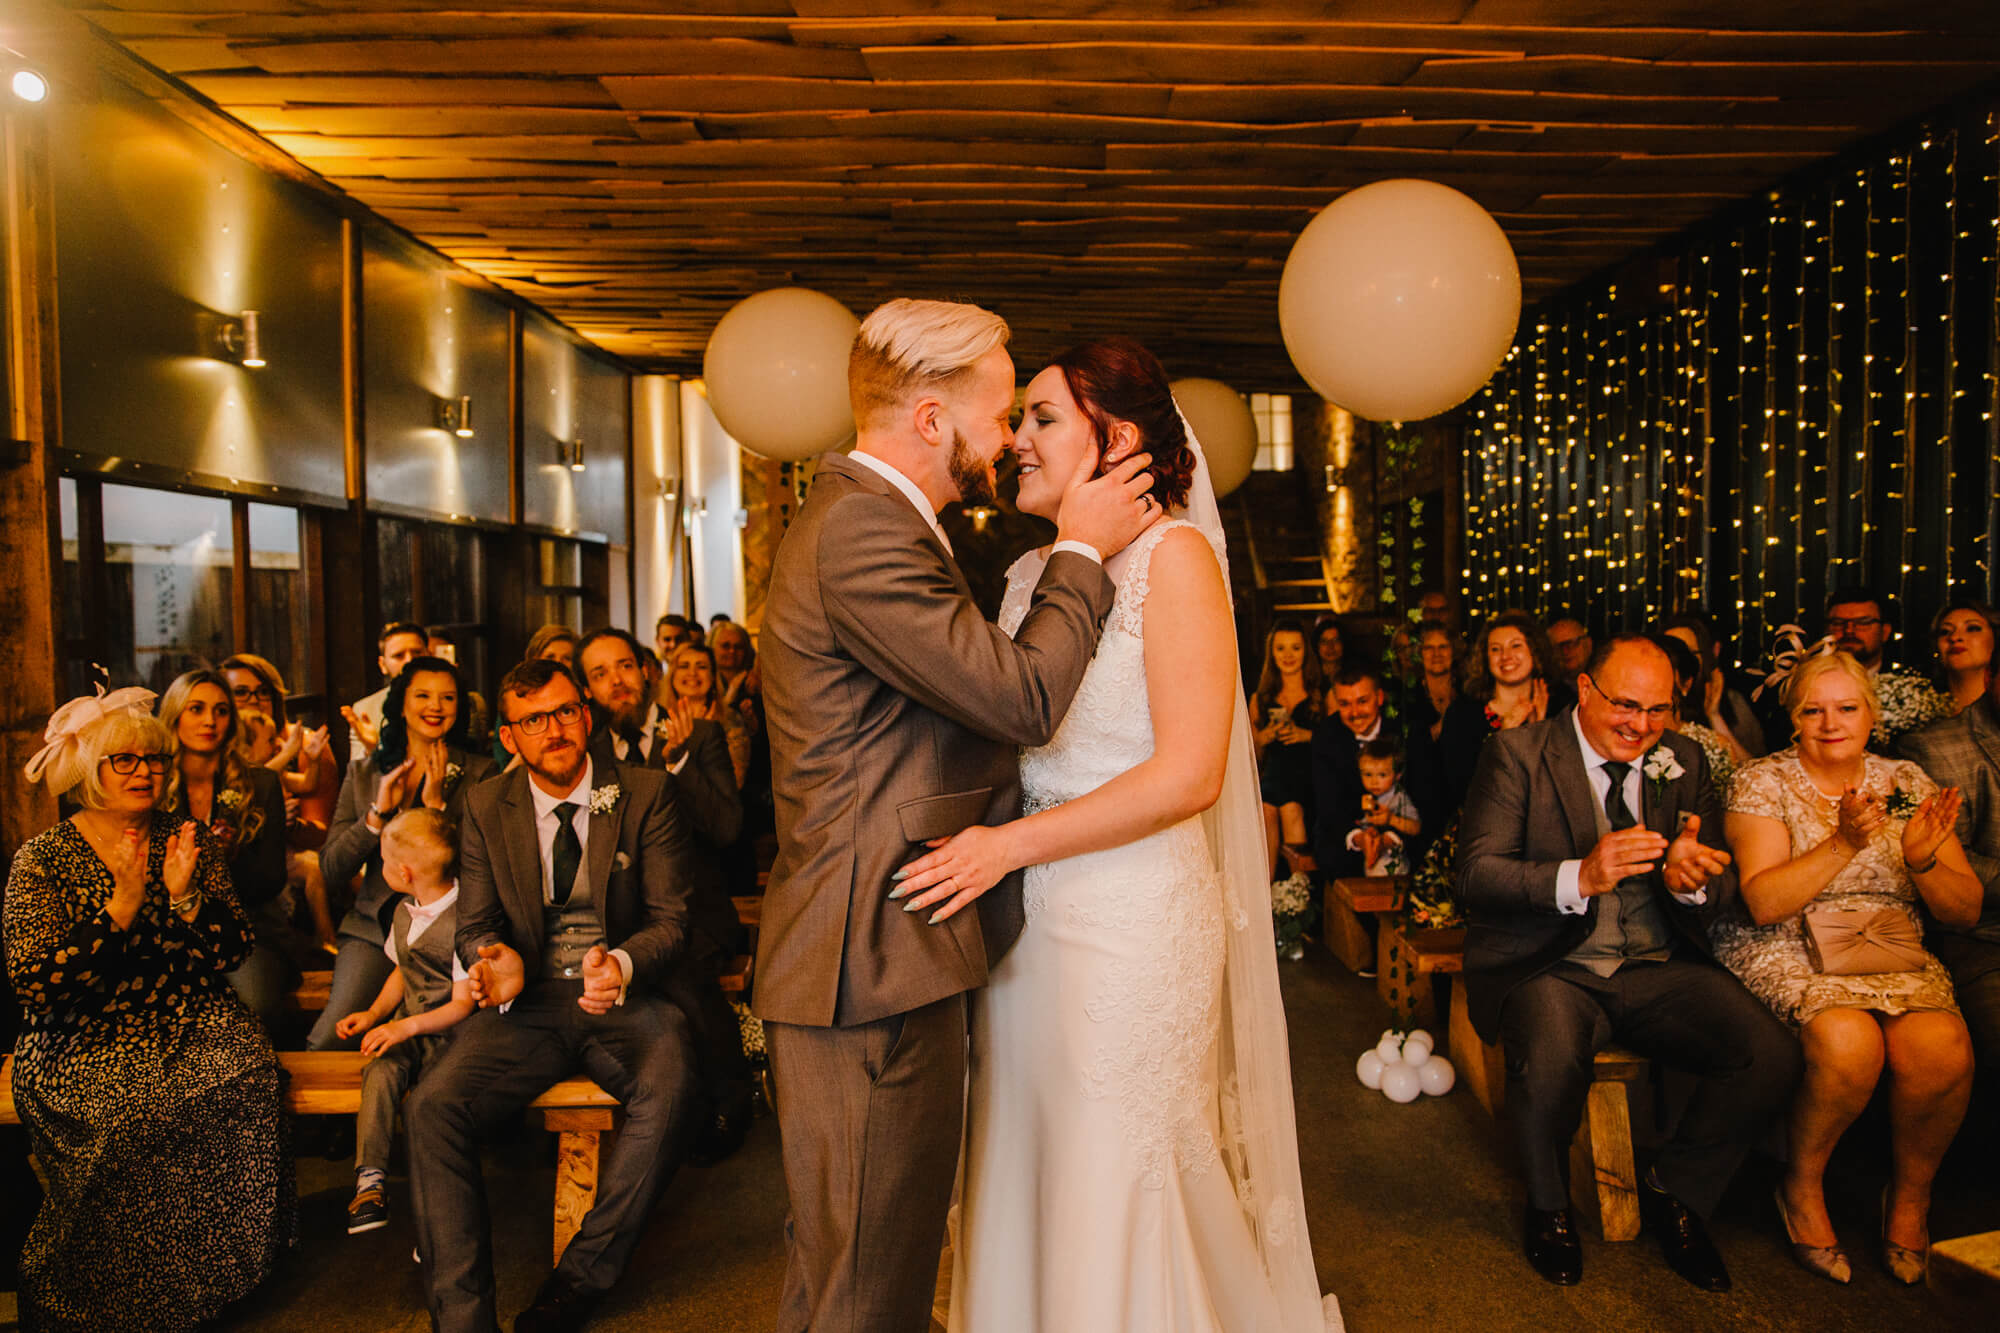 First kiss of newly wedded couple after service ends